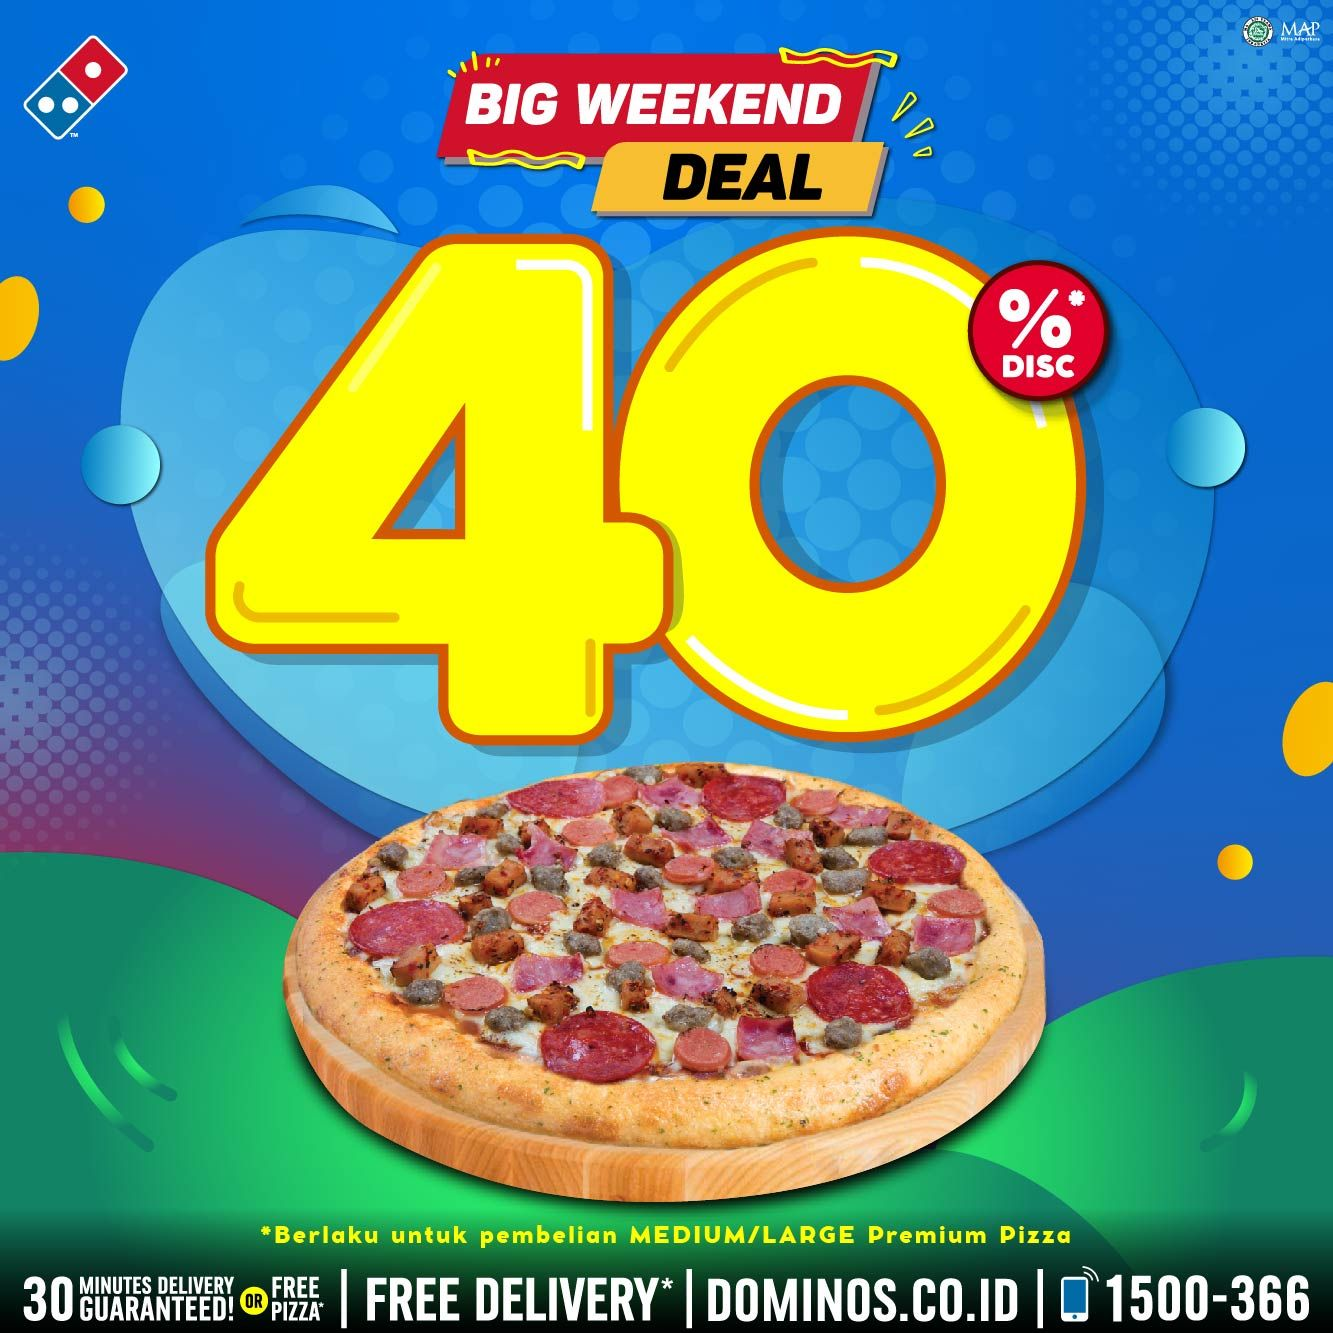 Promo Dominos Pizza Big Weekend Deal 40 Periode 17 19 Juli 2020 Harga Diskon